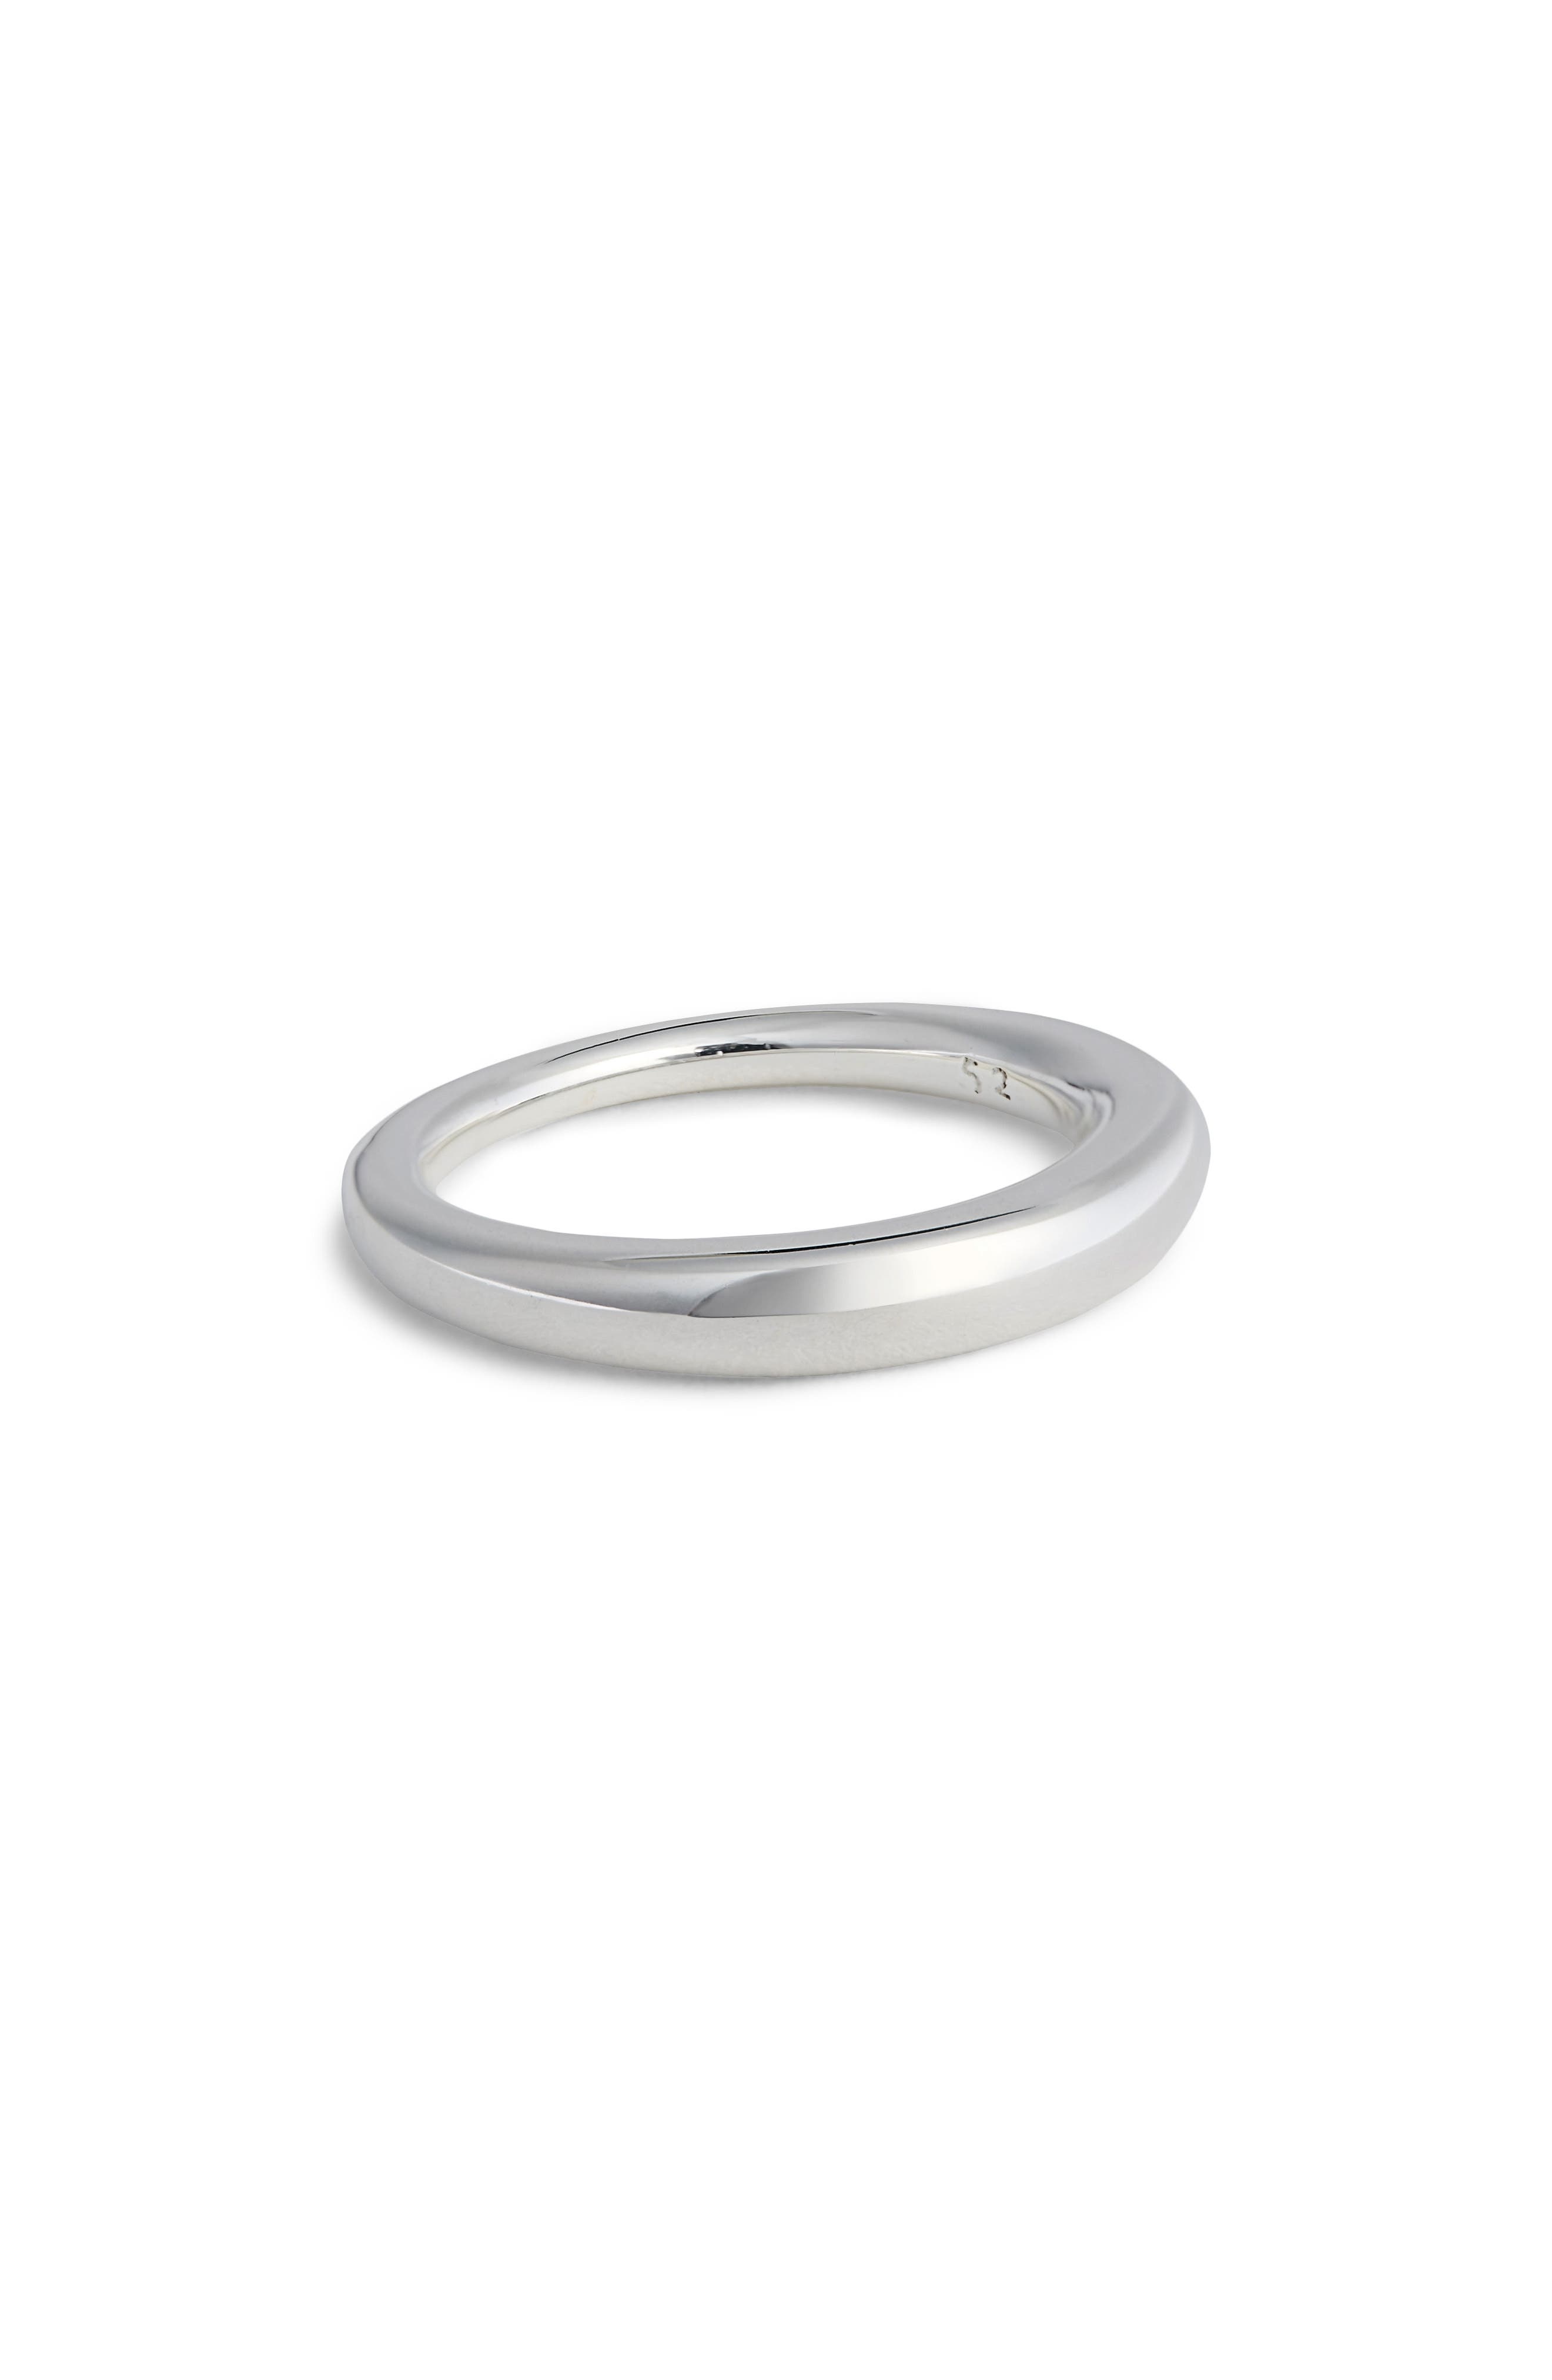 Small Snake Polished Silver Ring,                         Main,                         color, POLISHED SILVER